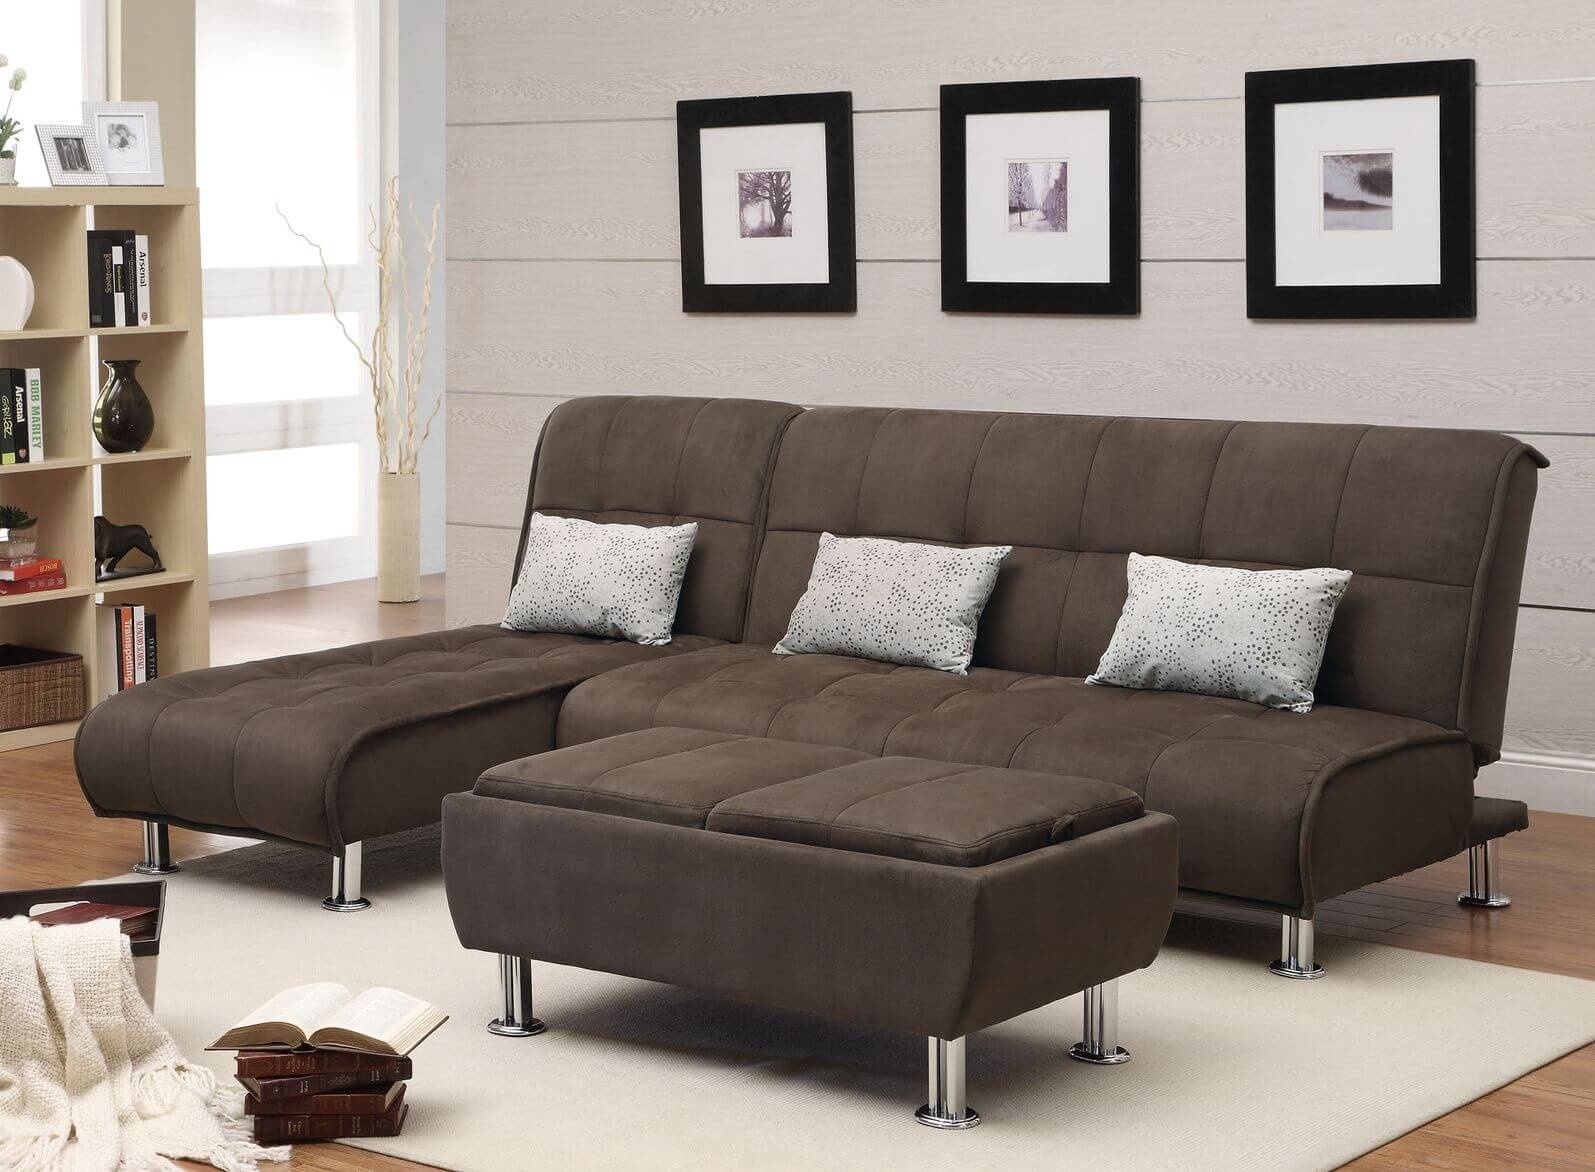 50 Beautiful Living Rooms With Ottoman Coffee Tables pertaining to Coffee Table for Sectional Sofa (Image 2 of 30)